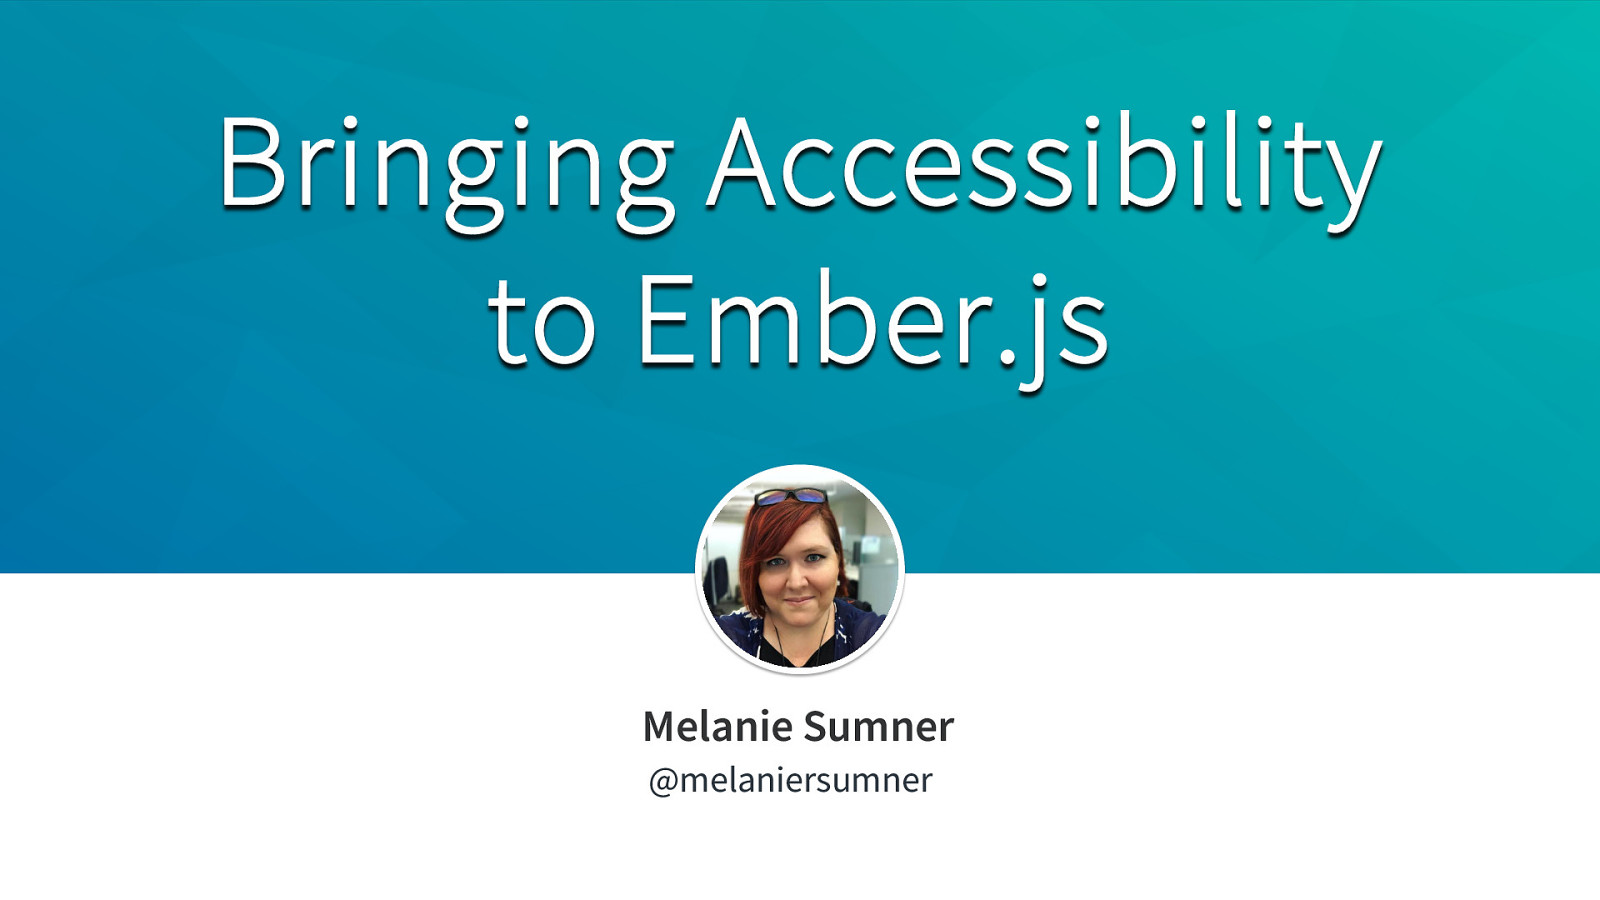 Bringing Accessibility to Ember.js